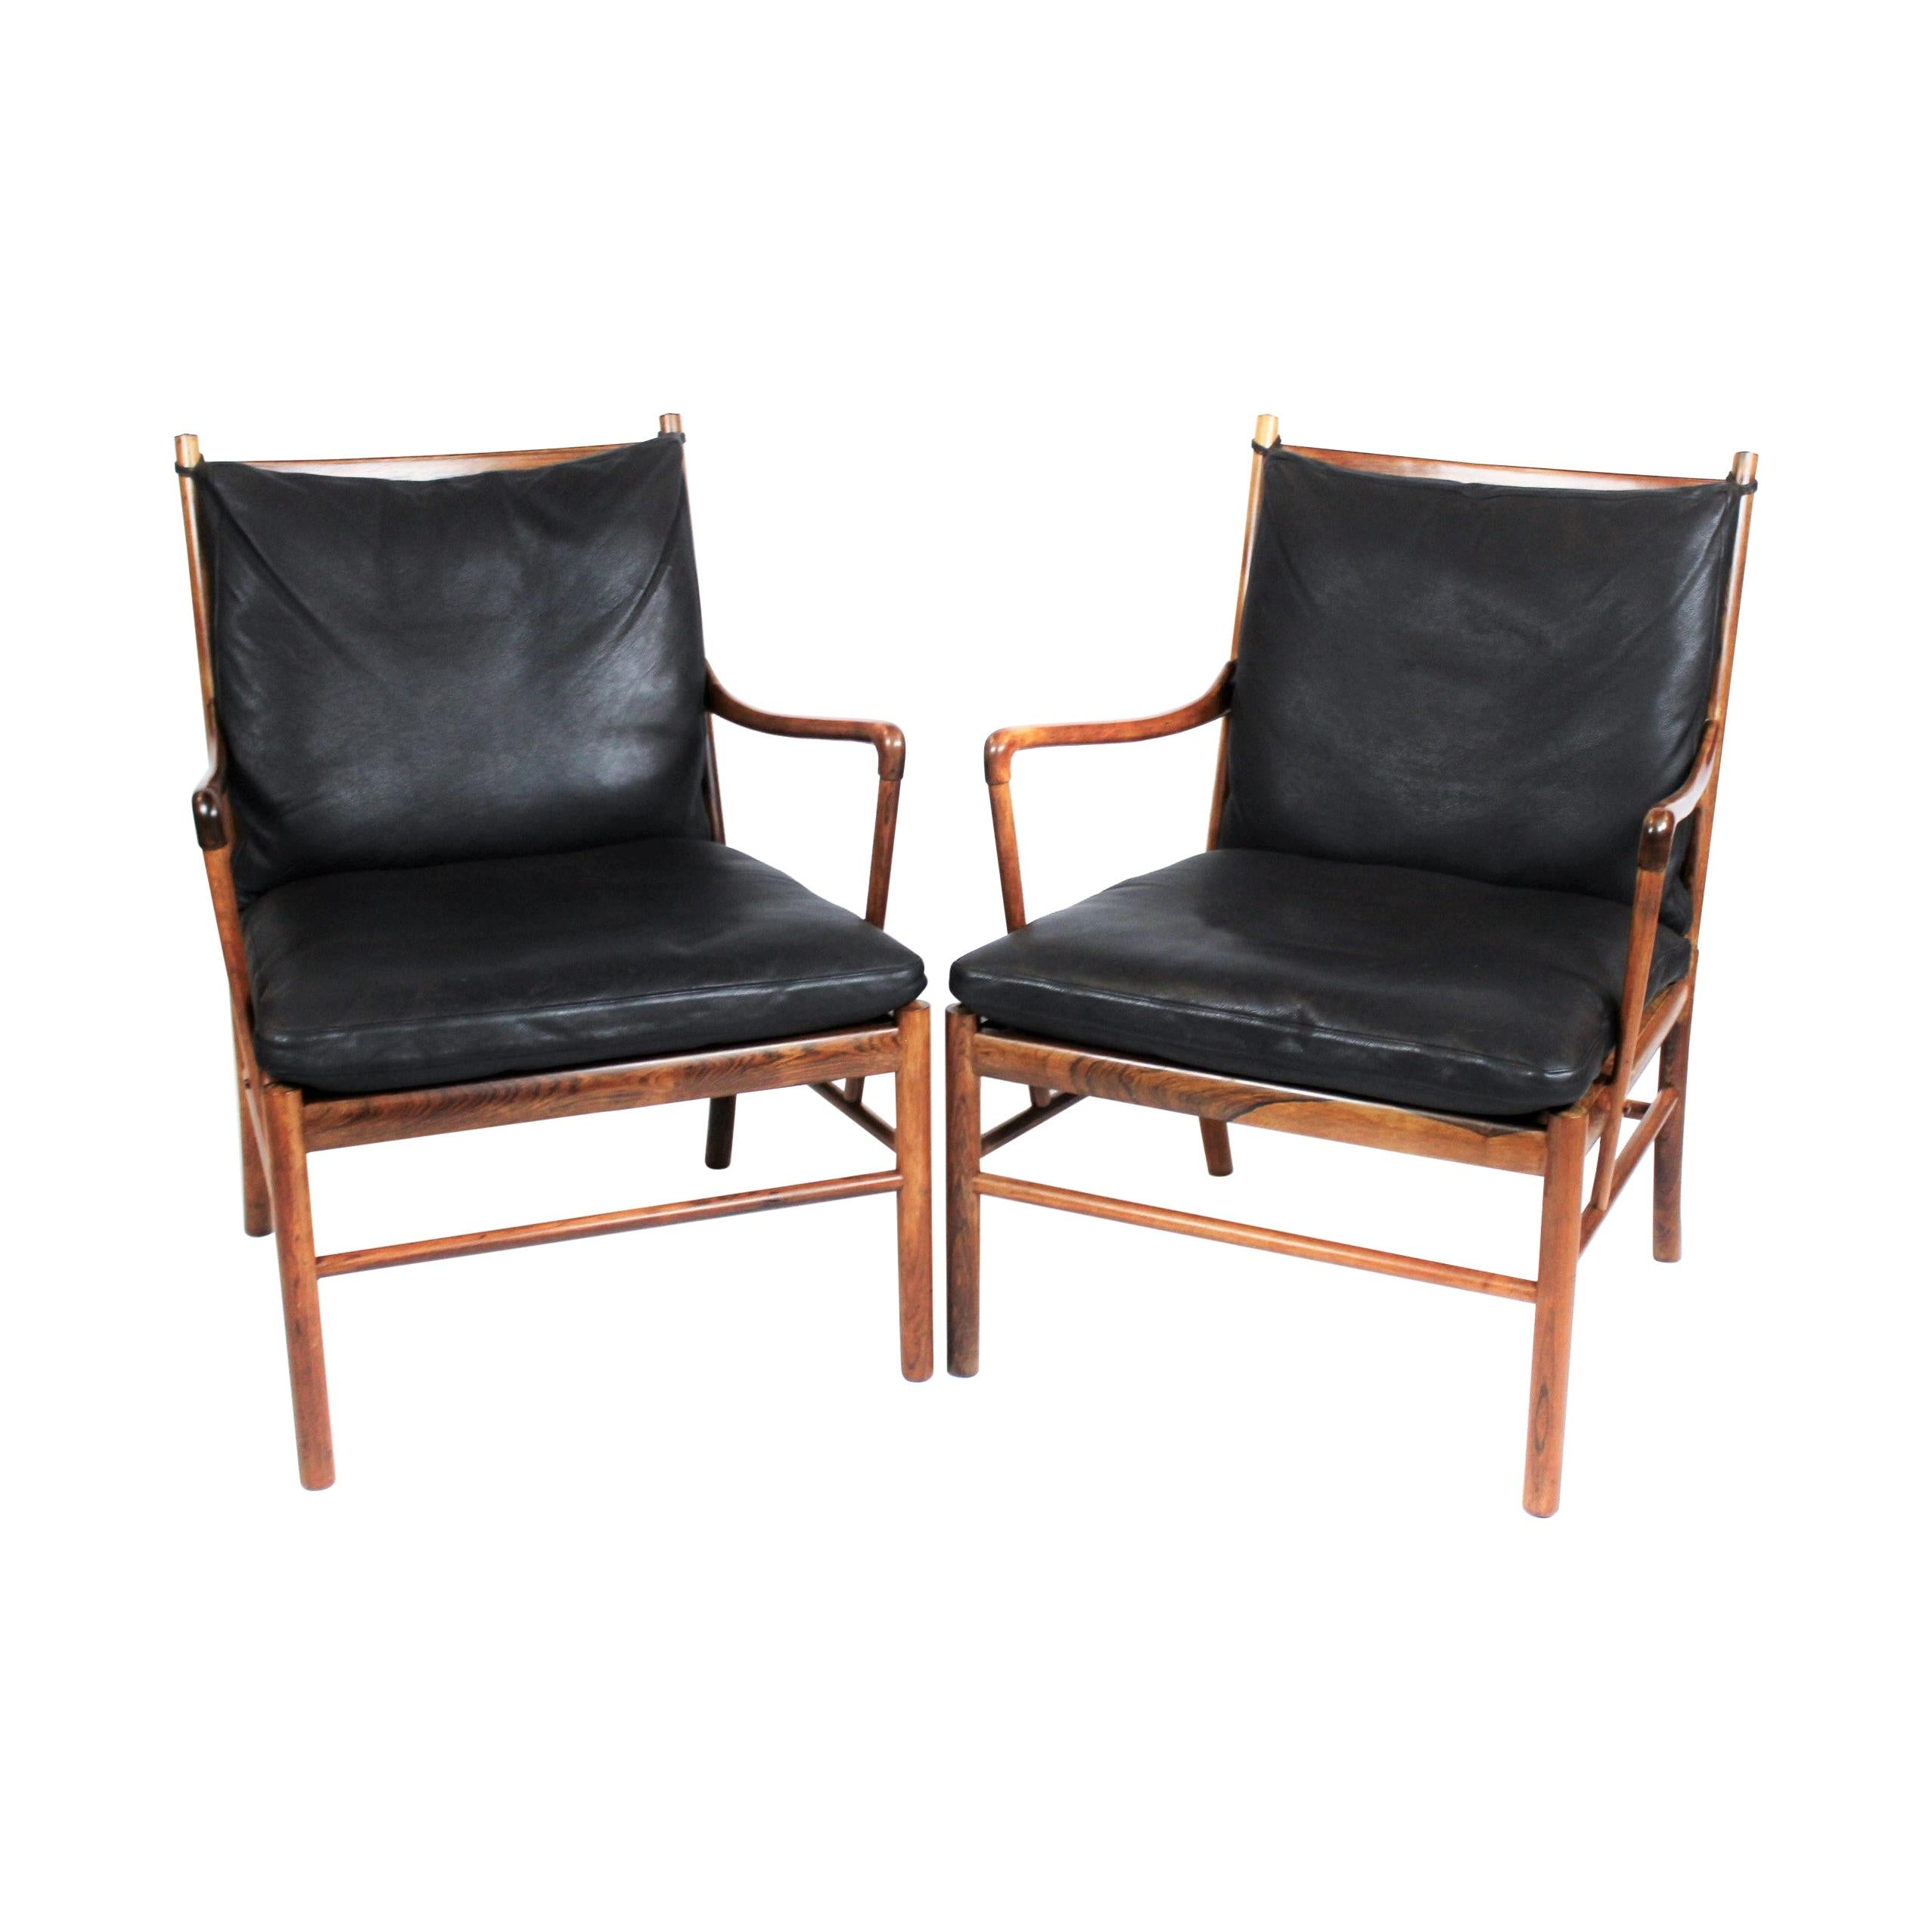 Pair of Colonial Easy Chairs, Model PJ149, by Ole Wanscher